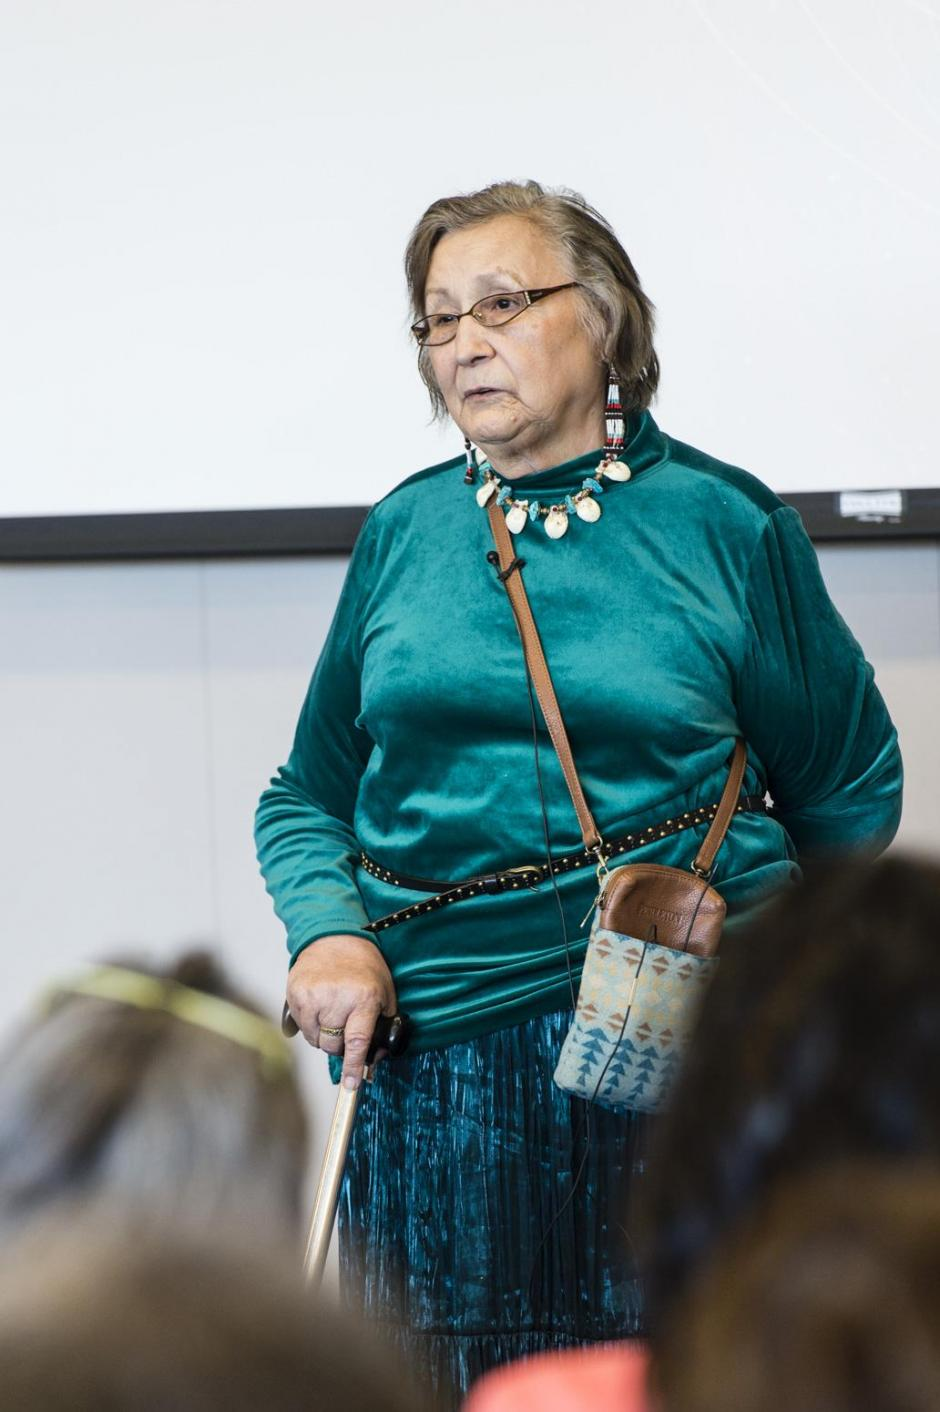 Elder Dila Houle delivers opening remarks at the Hope Decoded summit